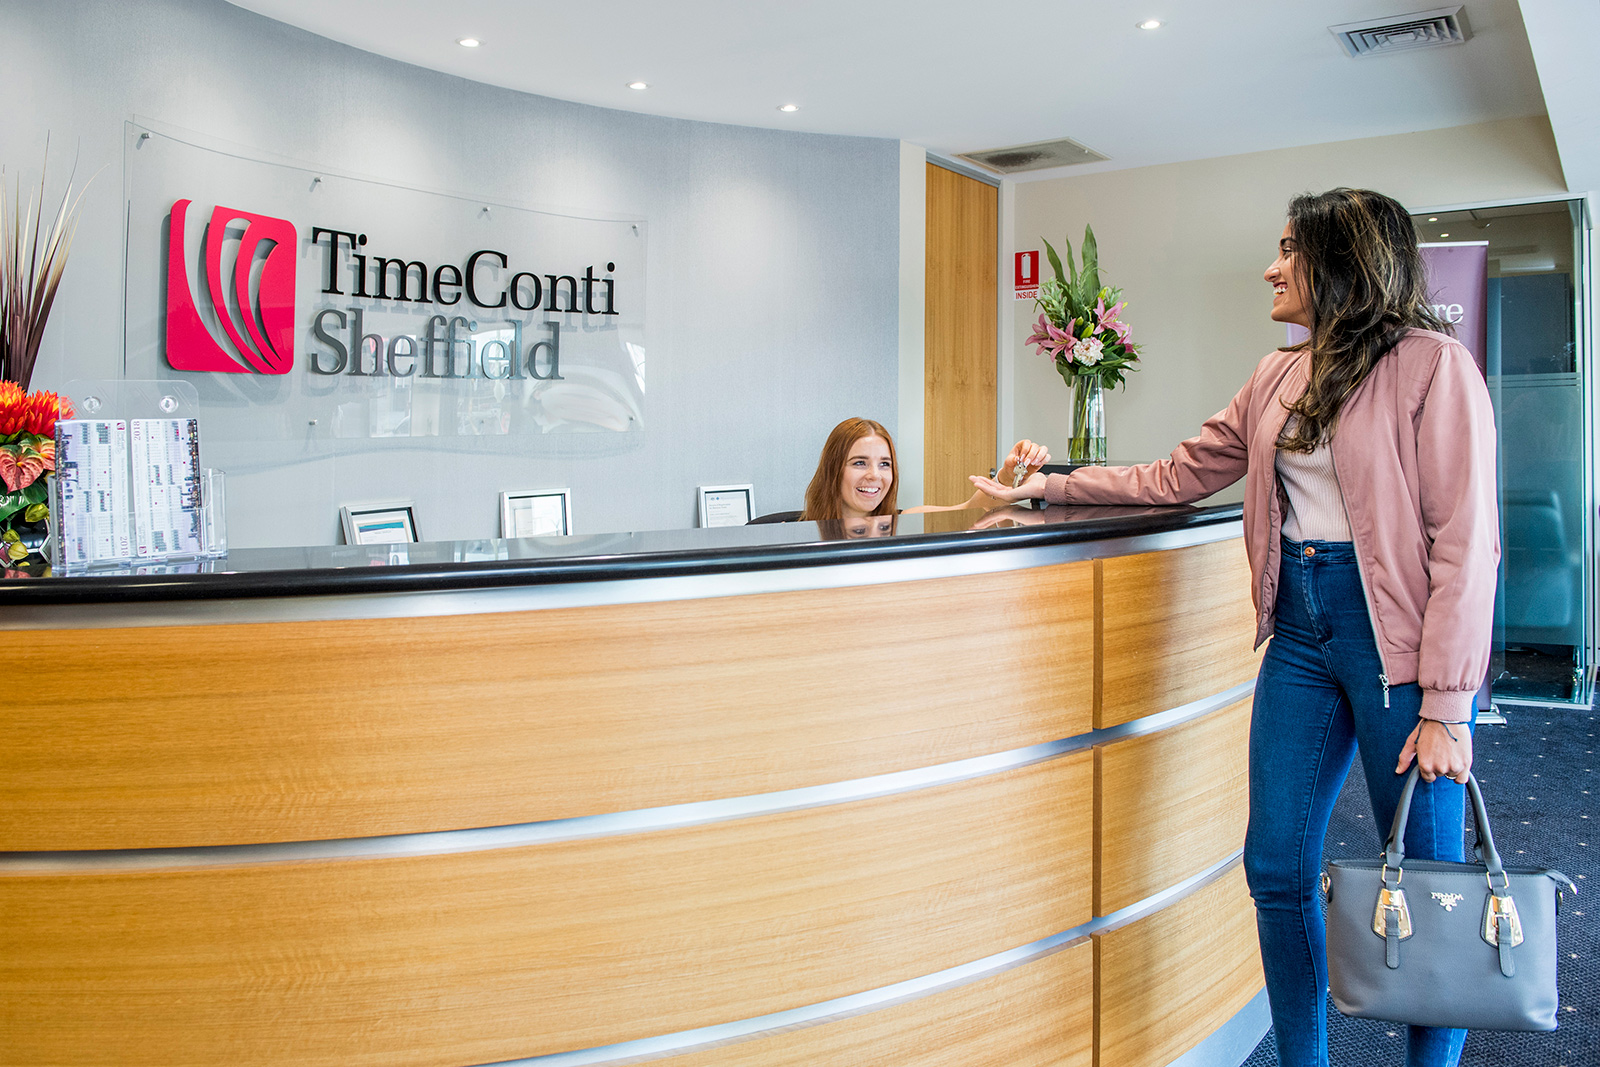 What Makes Time Conti Sheffield Property Managers Different